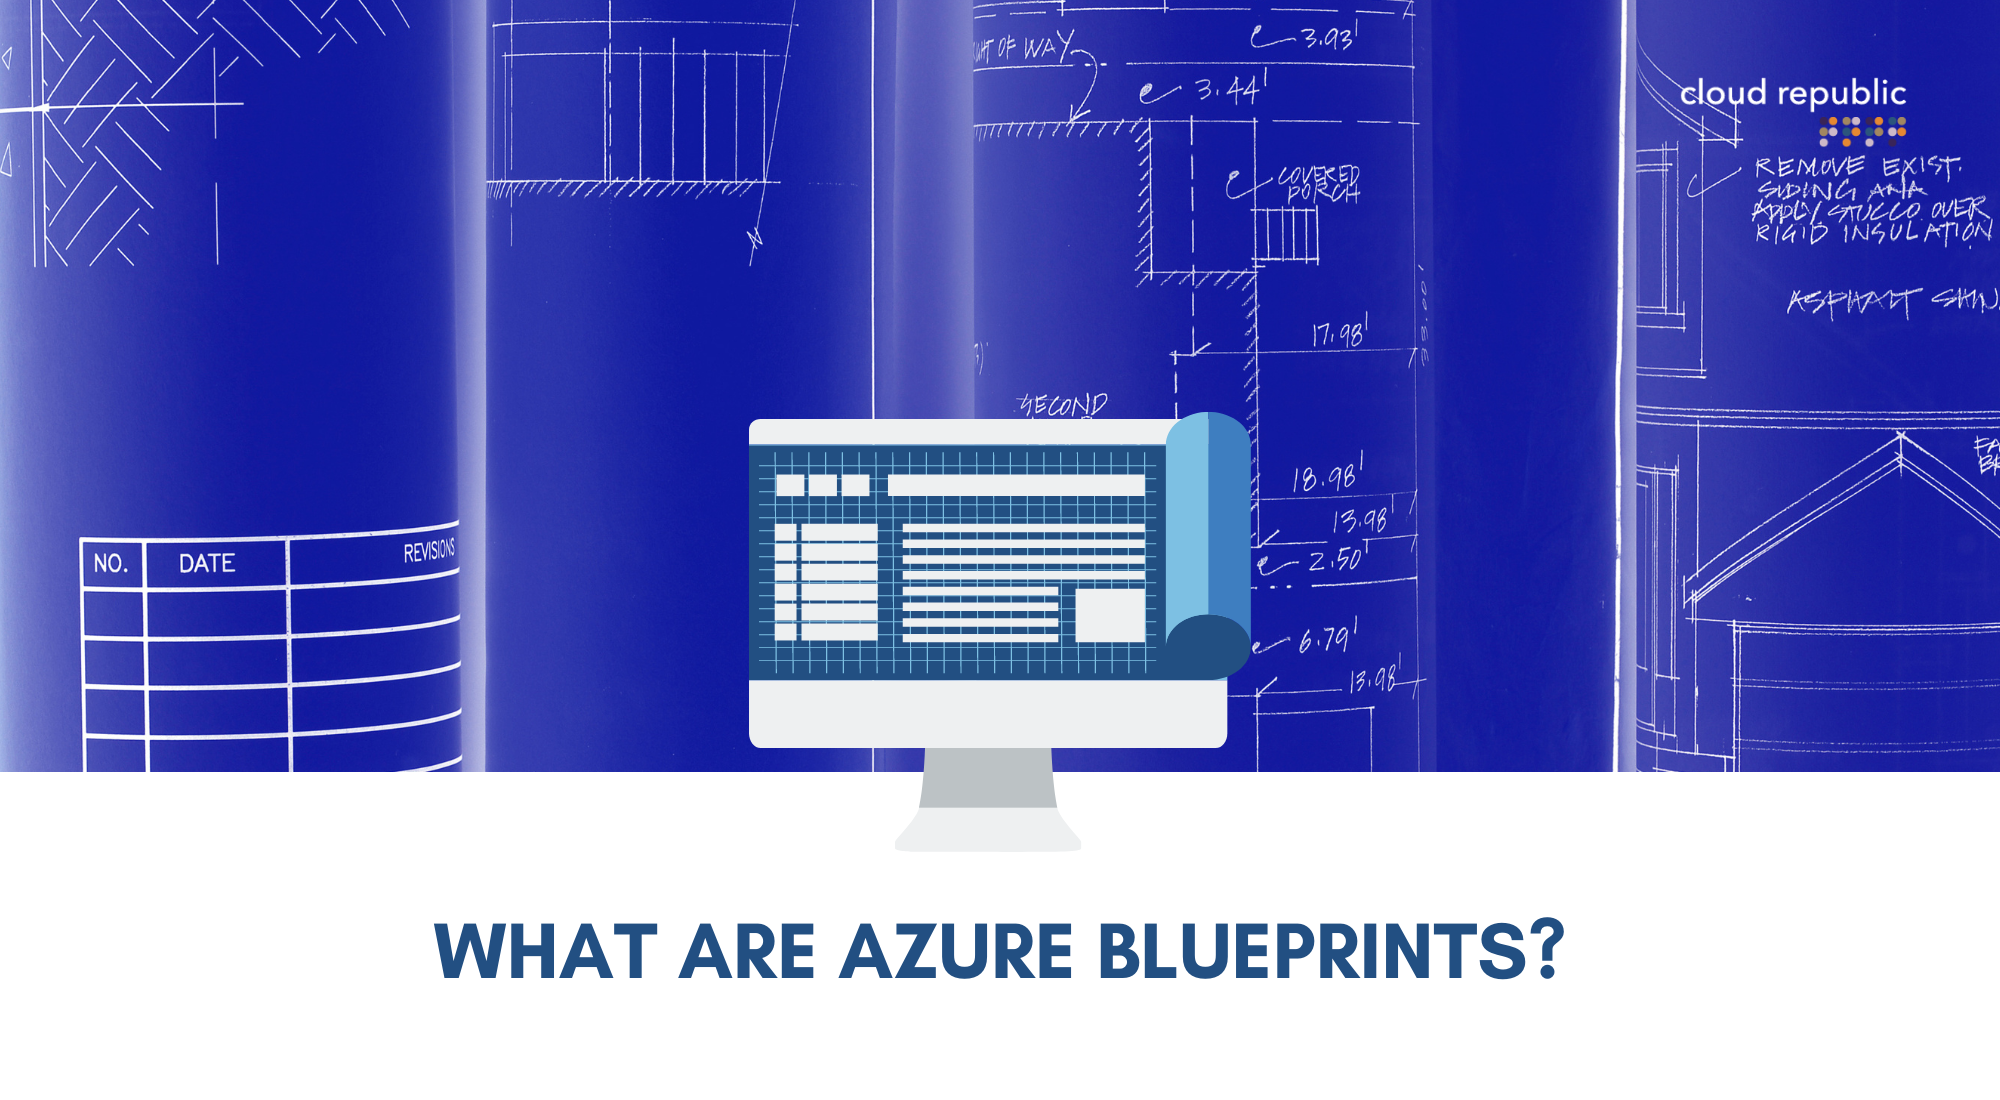 What Are Azure Blueprints